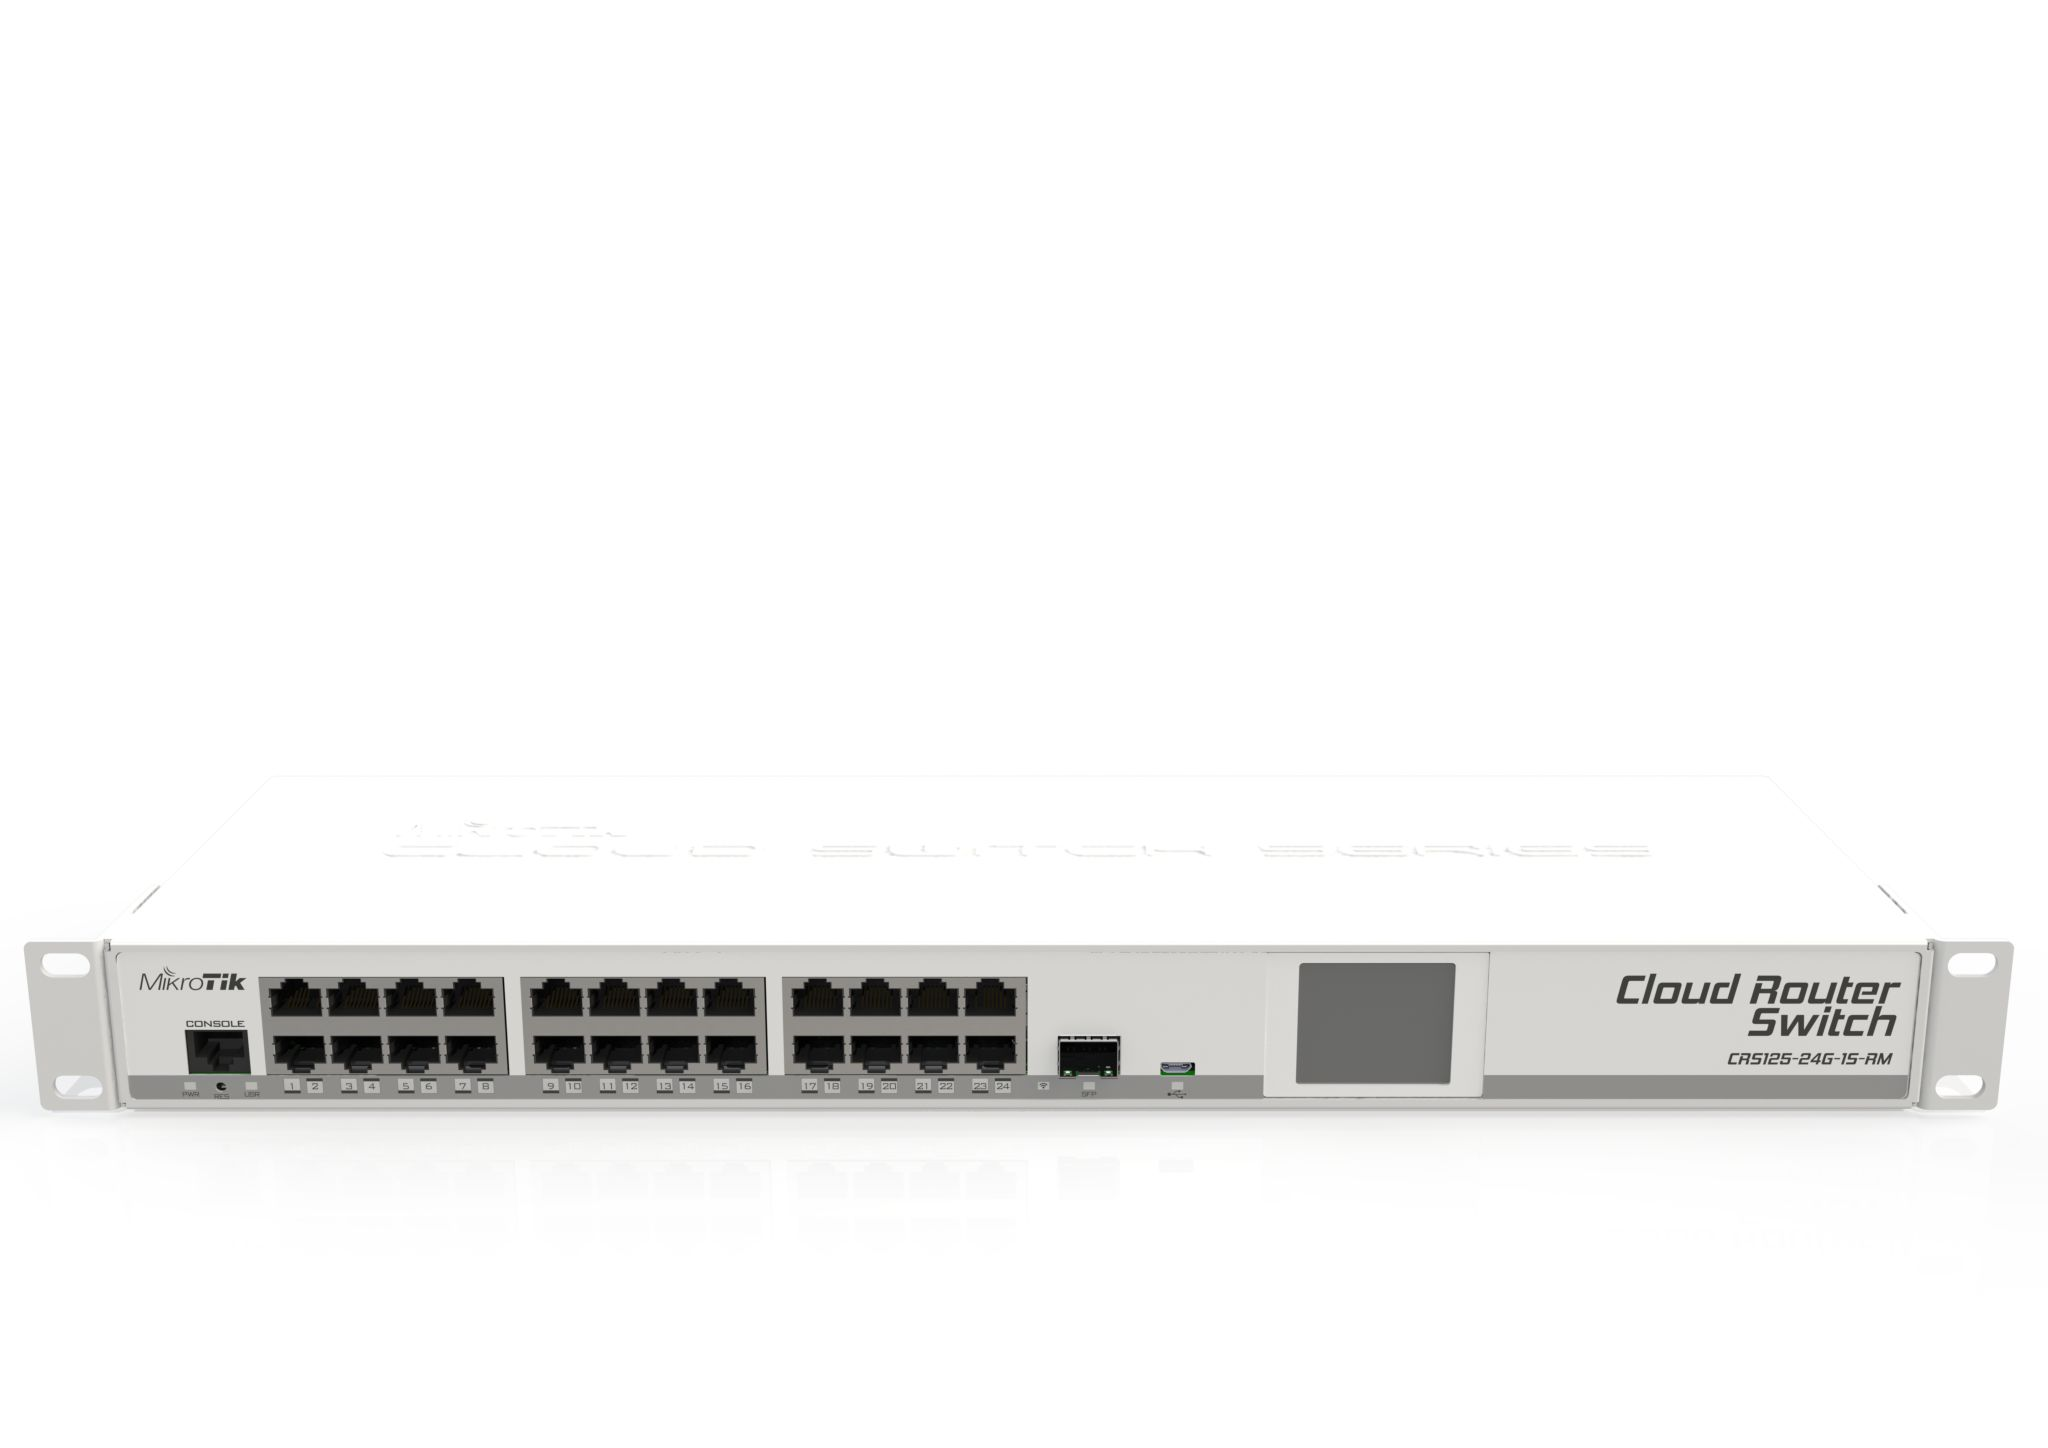 CRS125-24G-1S-RM Cloud Router Switch CRS125-24G-1S-RM 24xGbit Lan, 1xSFP, LCD ,L5 Rack Mount